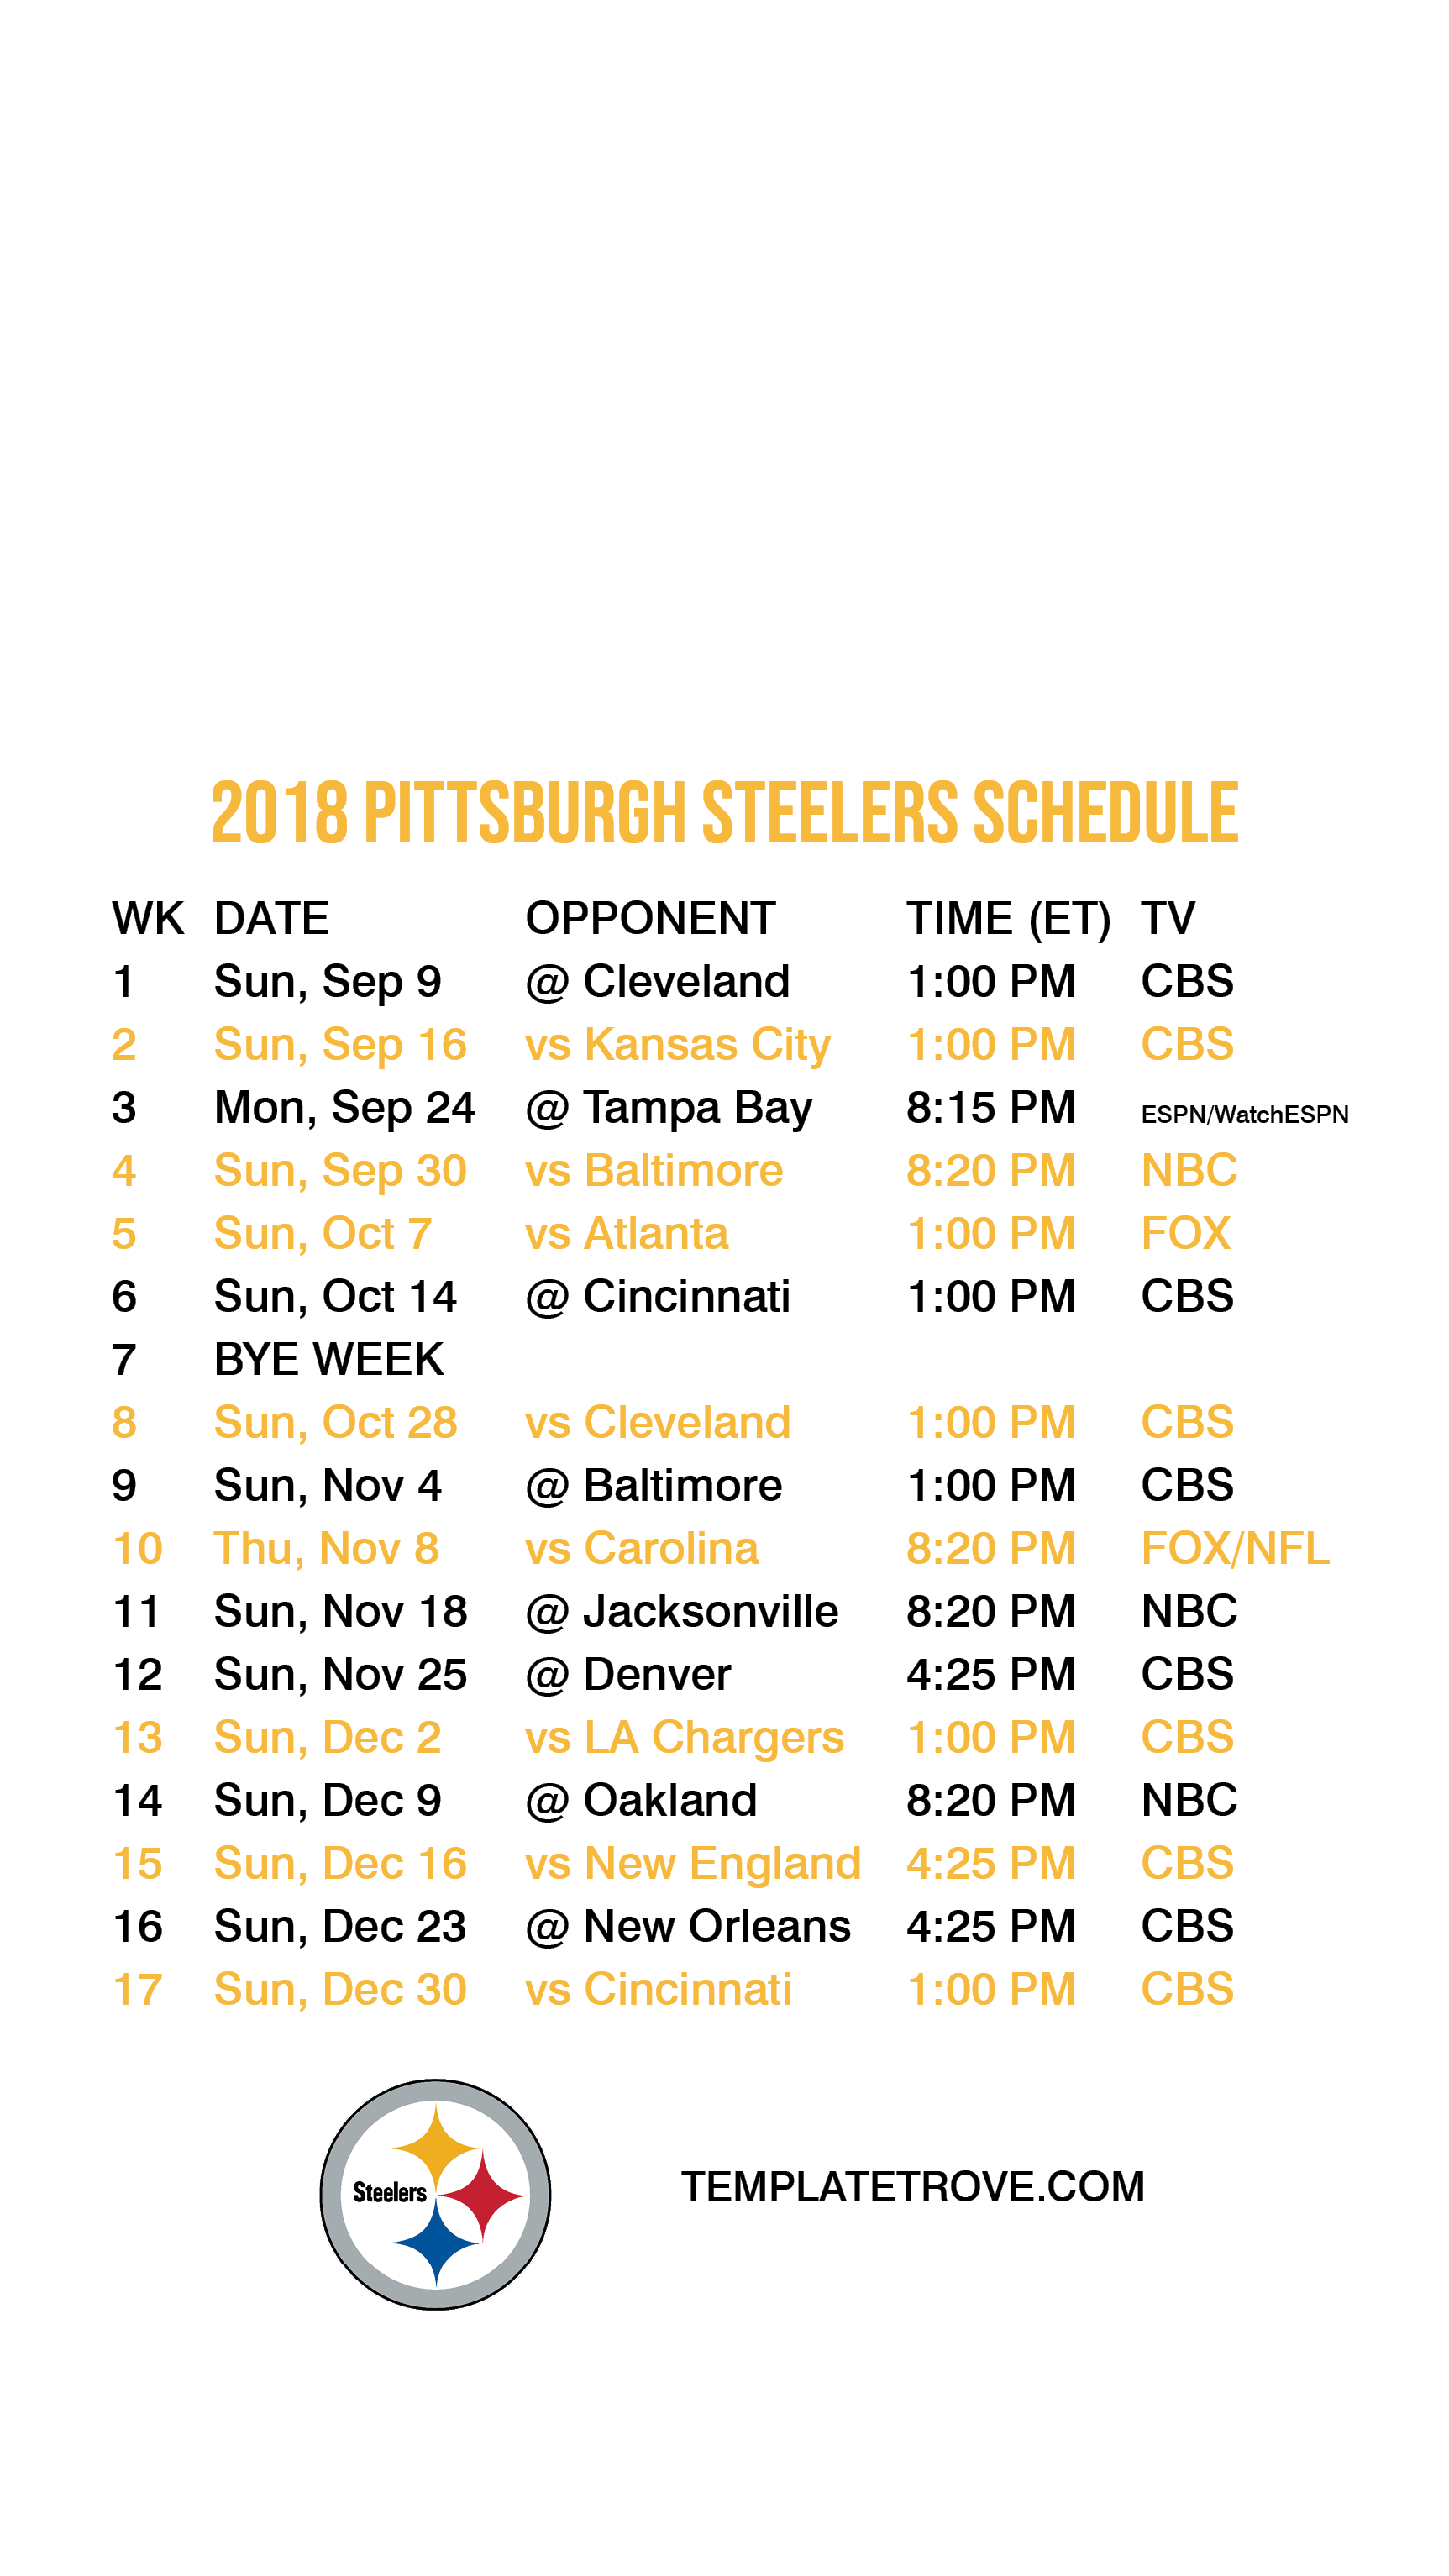 2018 2019 Pittsburgh Steelers Lock Screen Schedule For Iphone 6 7 8 Plus